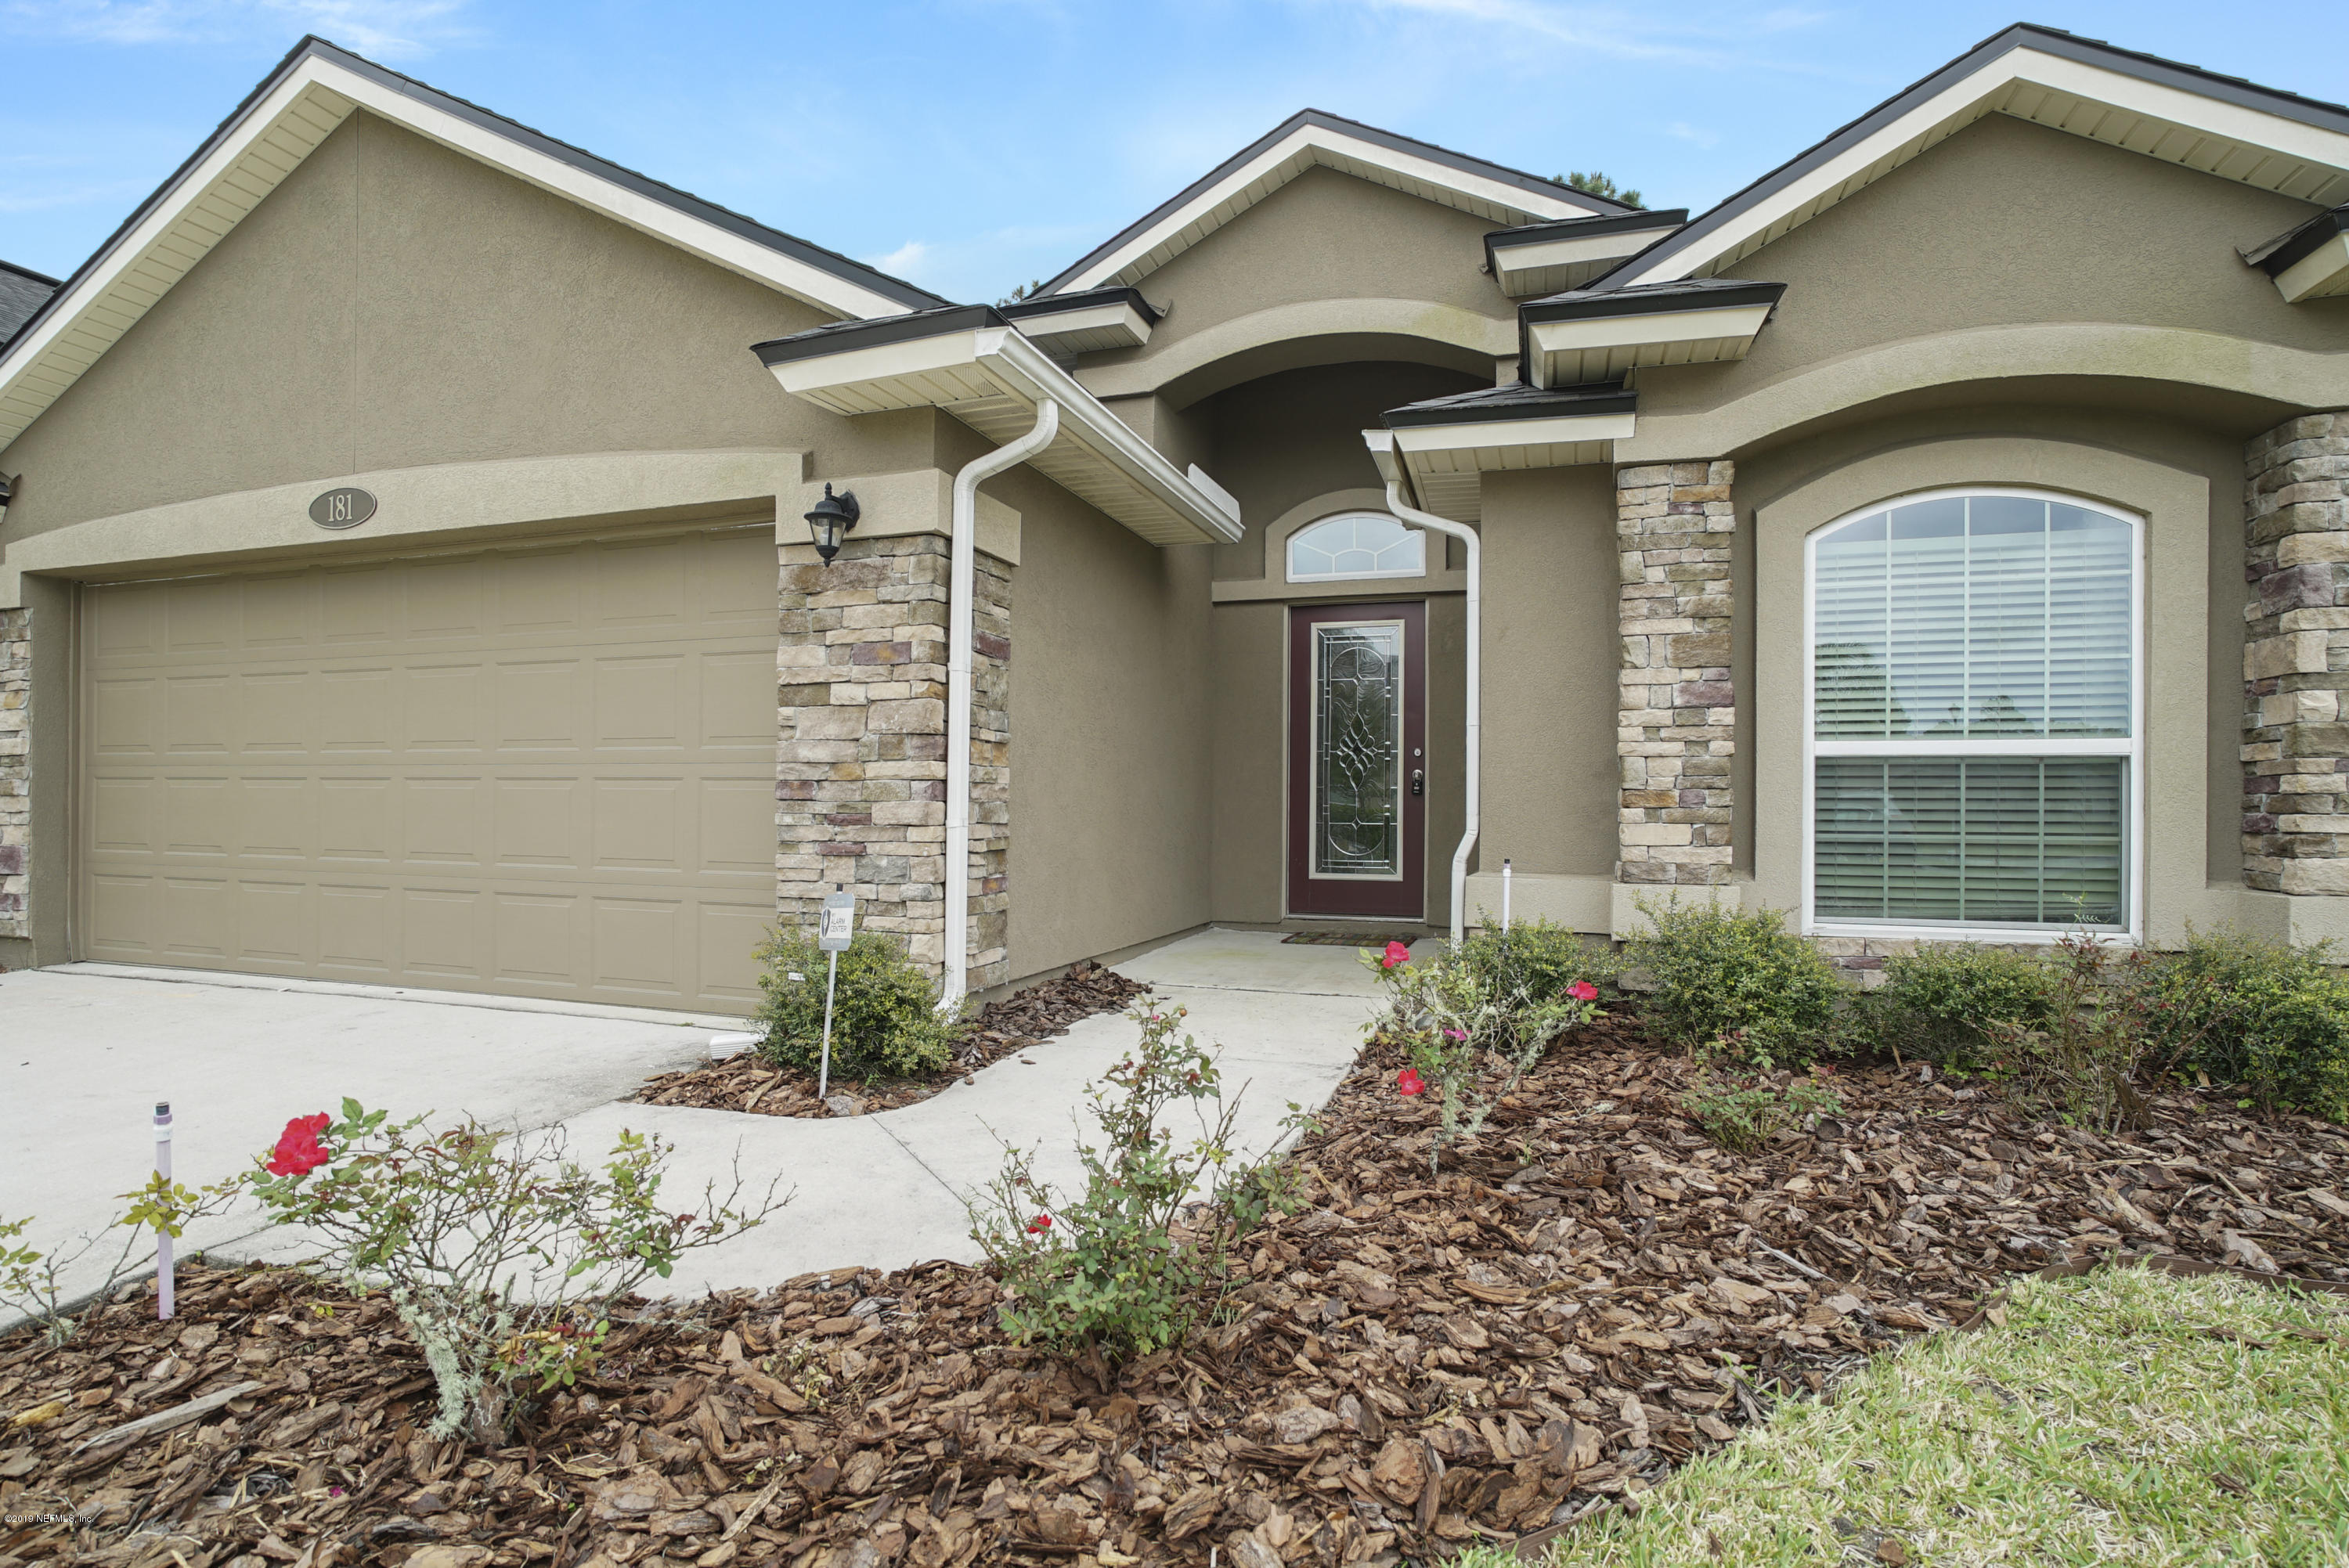 181 RIVER DEE, ST JOHNS, FLORIDA 32259, 4 Bedrooms Bedrooms, ,2 BathroomsBathrooms,Residential - single family,For sale,RIVER DEE,985514